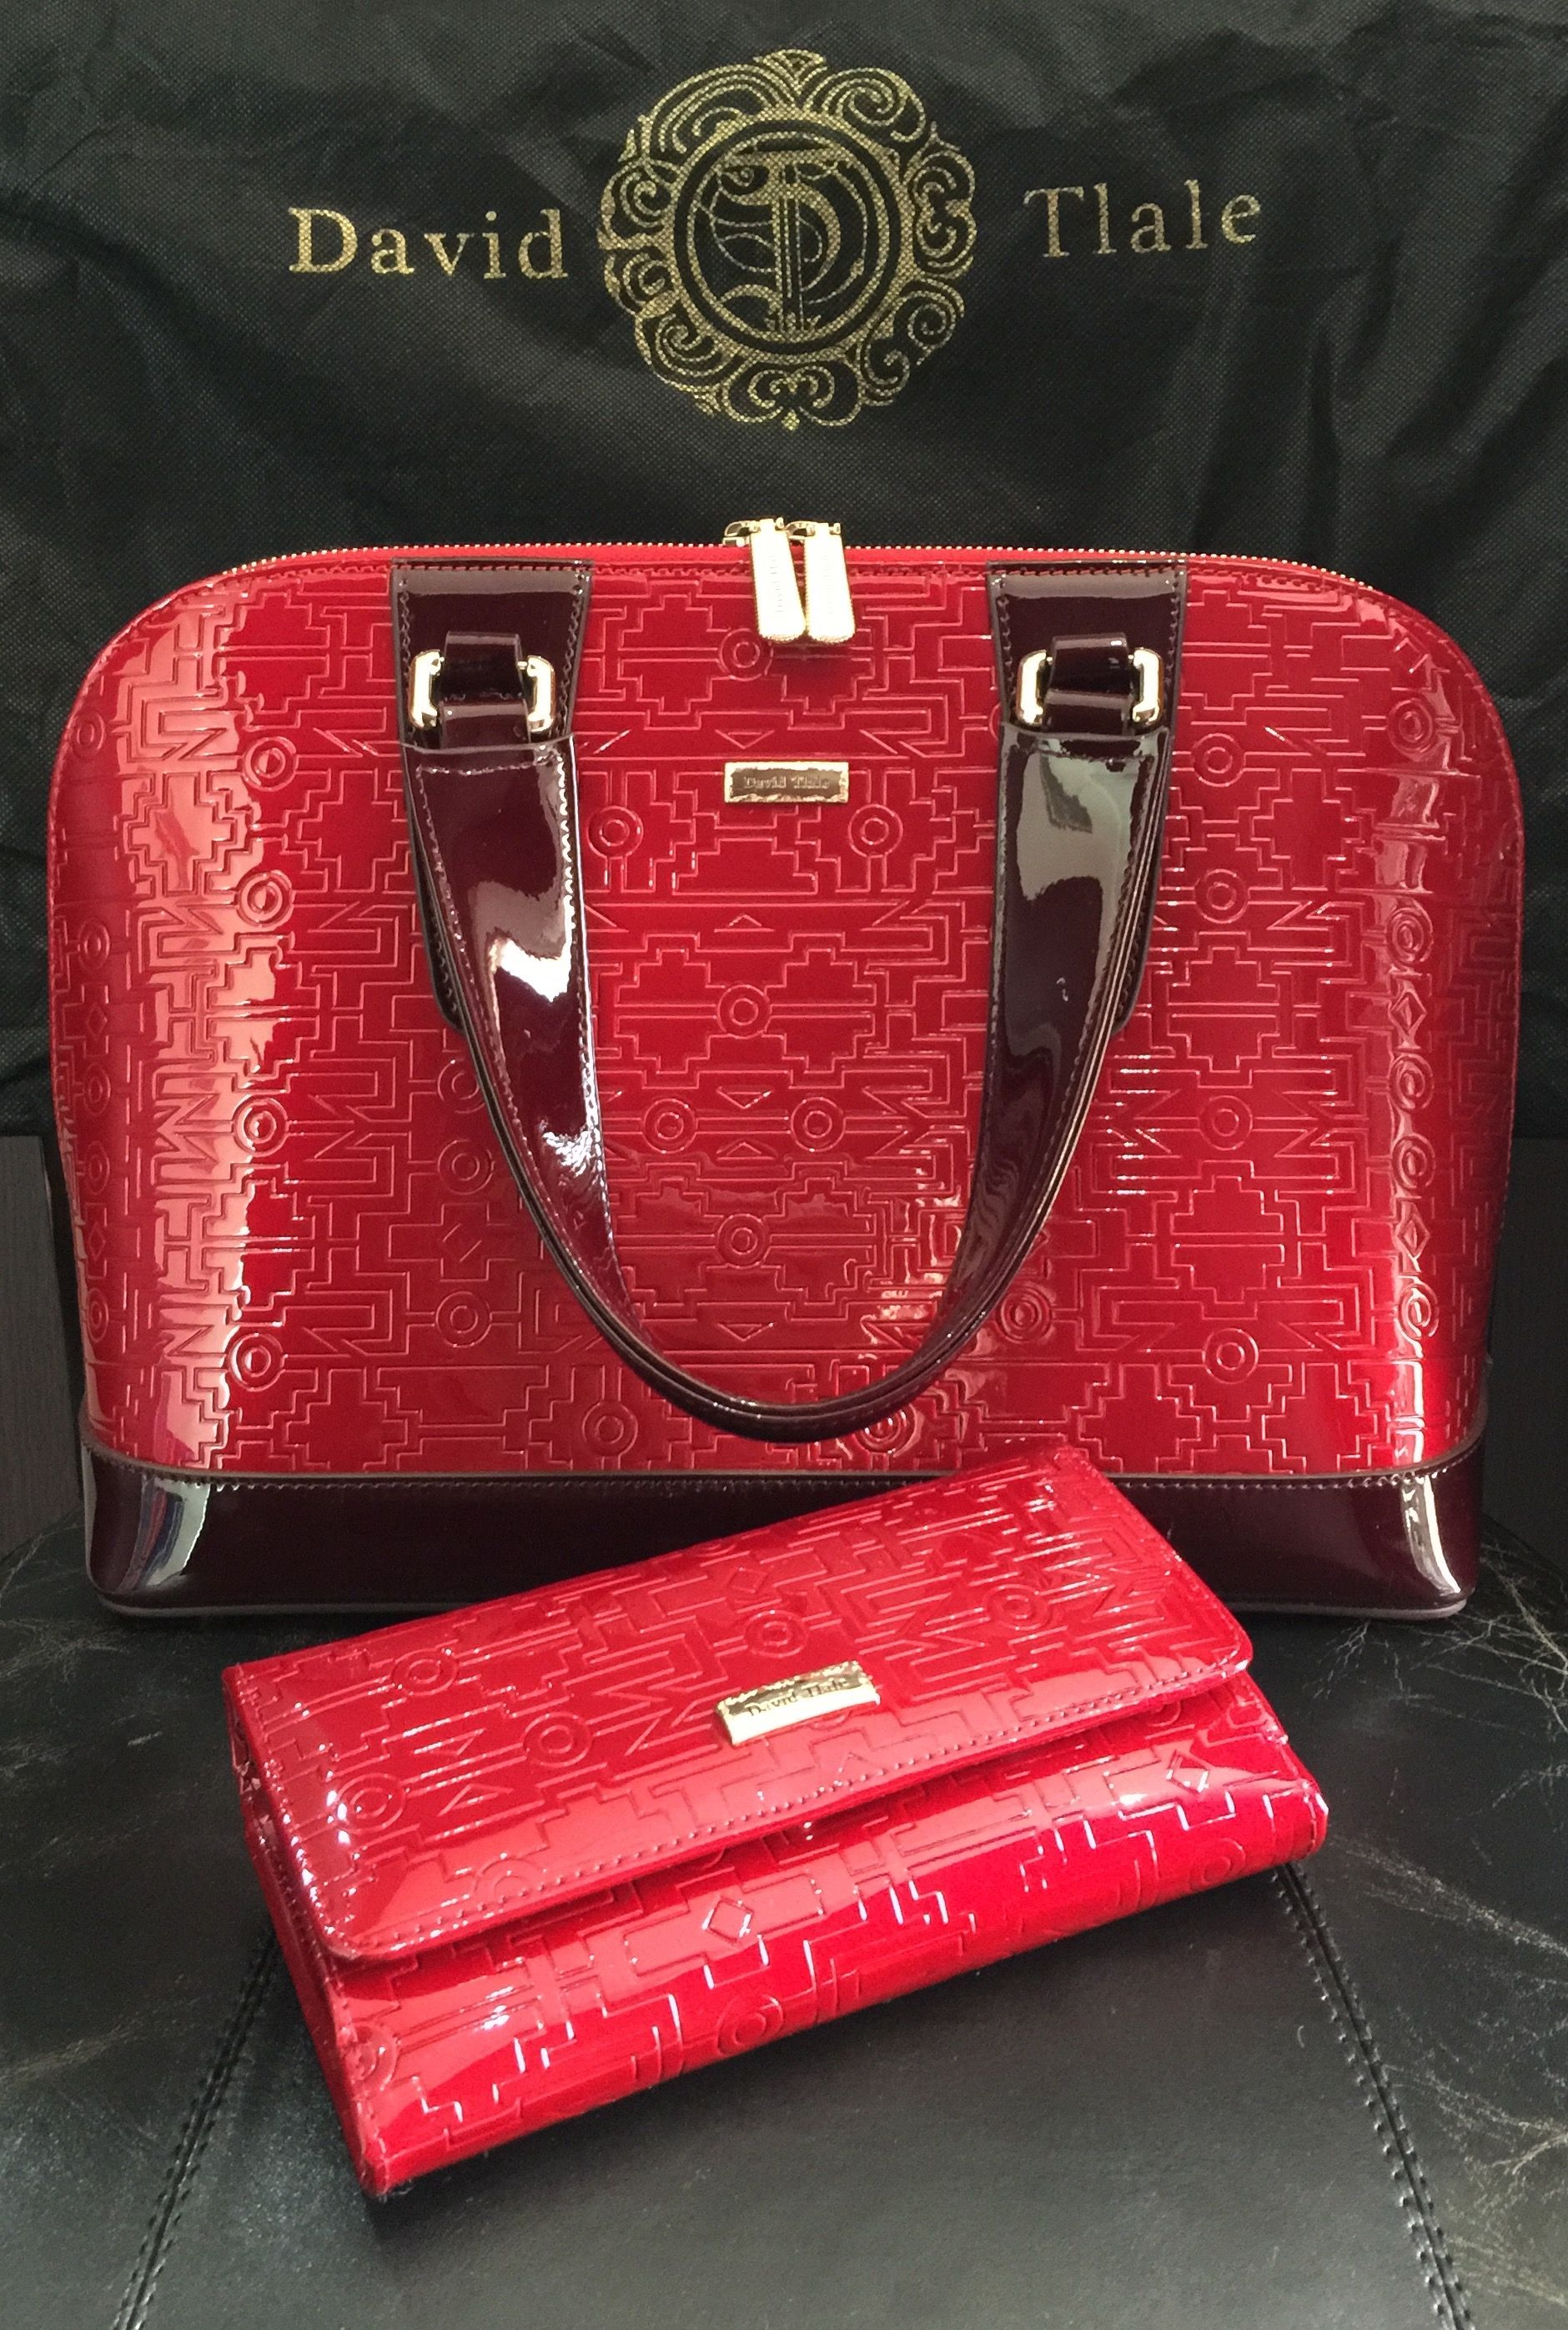 David Tlale South African Designer A Beautiful Patent Leather Bag Matching Wallet Design